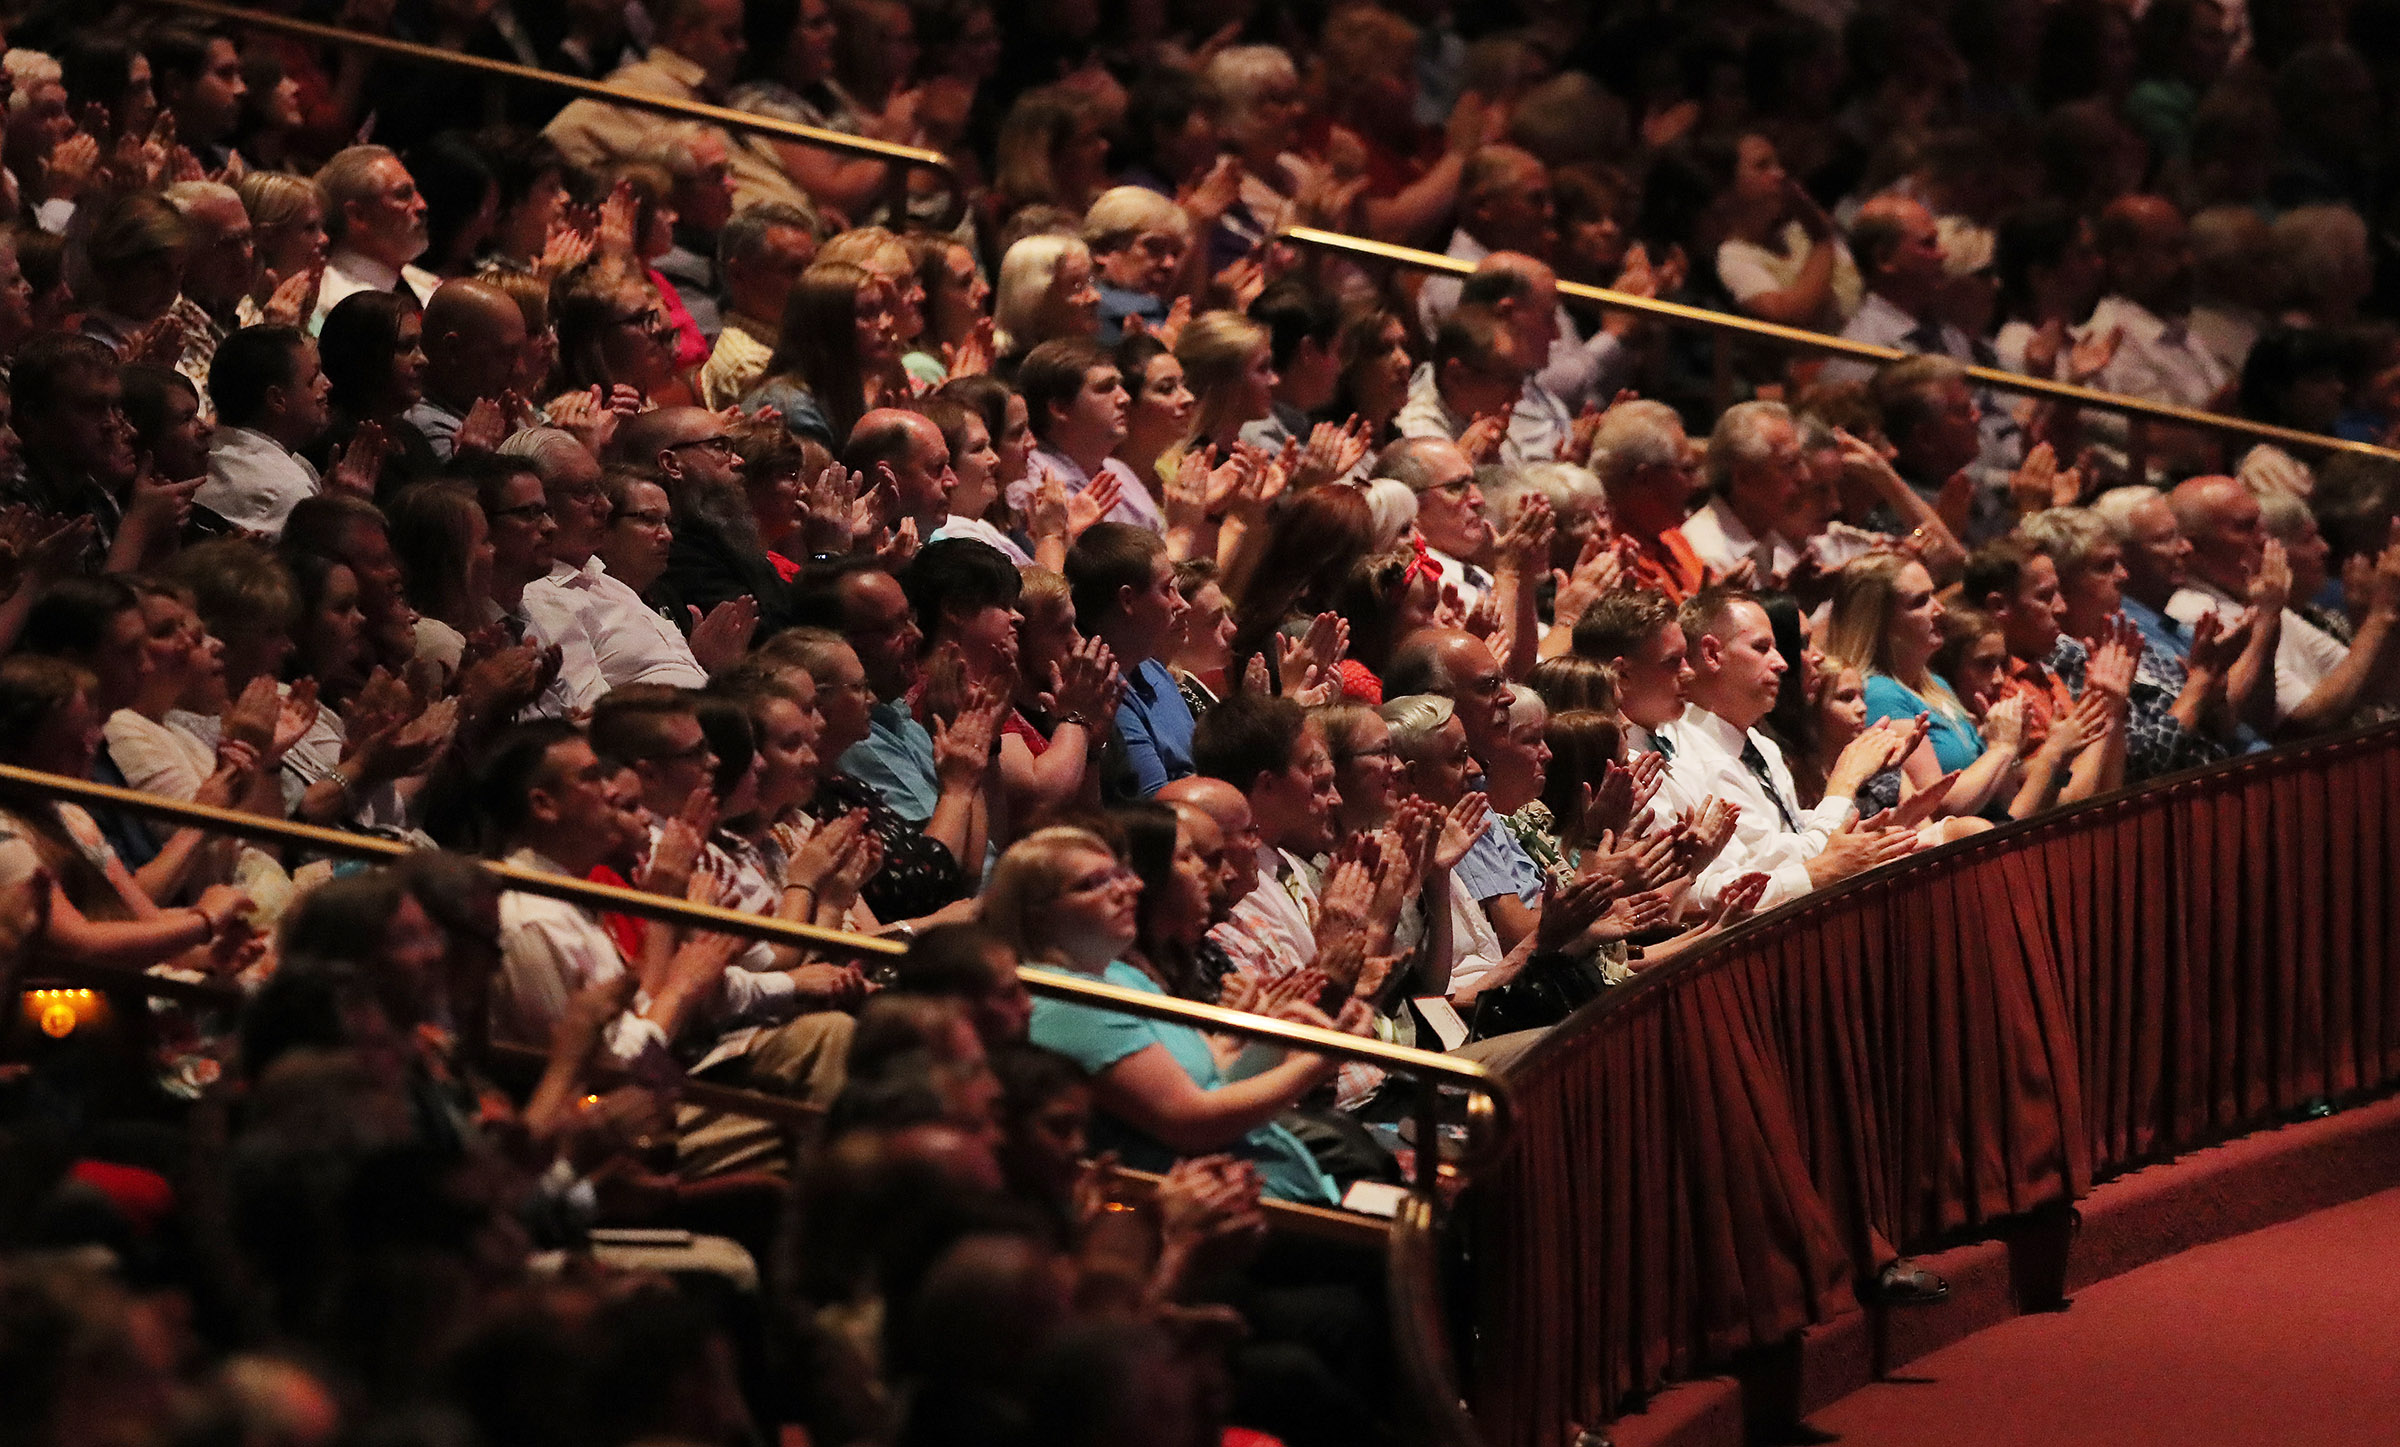 Audience members applaud the Mormon Tabernacle Choir and Orchestra at Temple Square during their annual Pioneer Concert at the Conference Center in Salt Lake City on Friday, July 20, 2018.